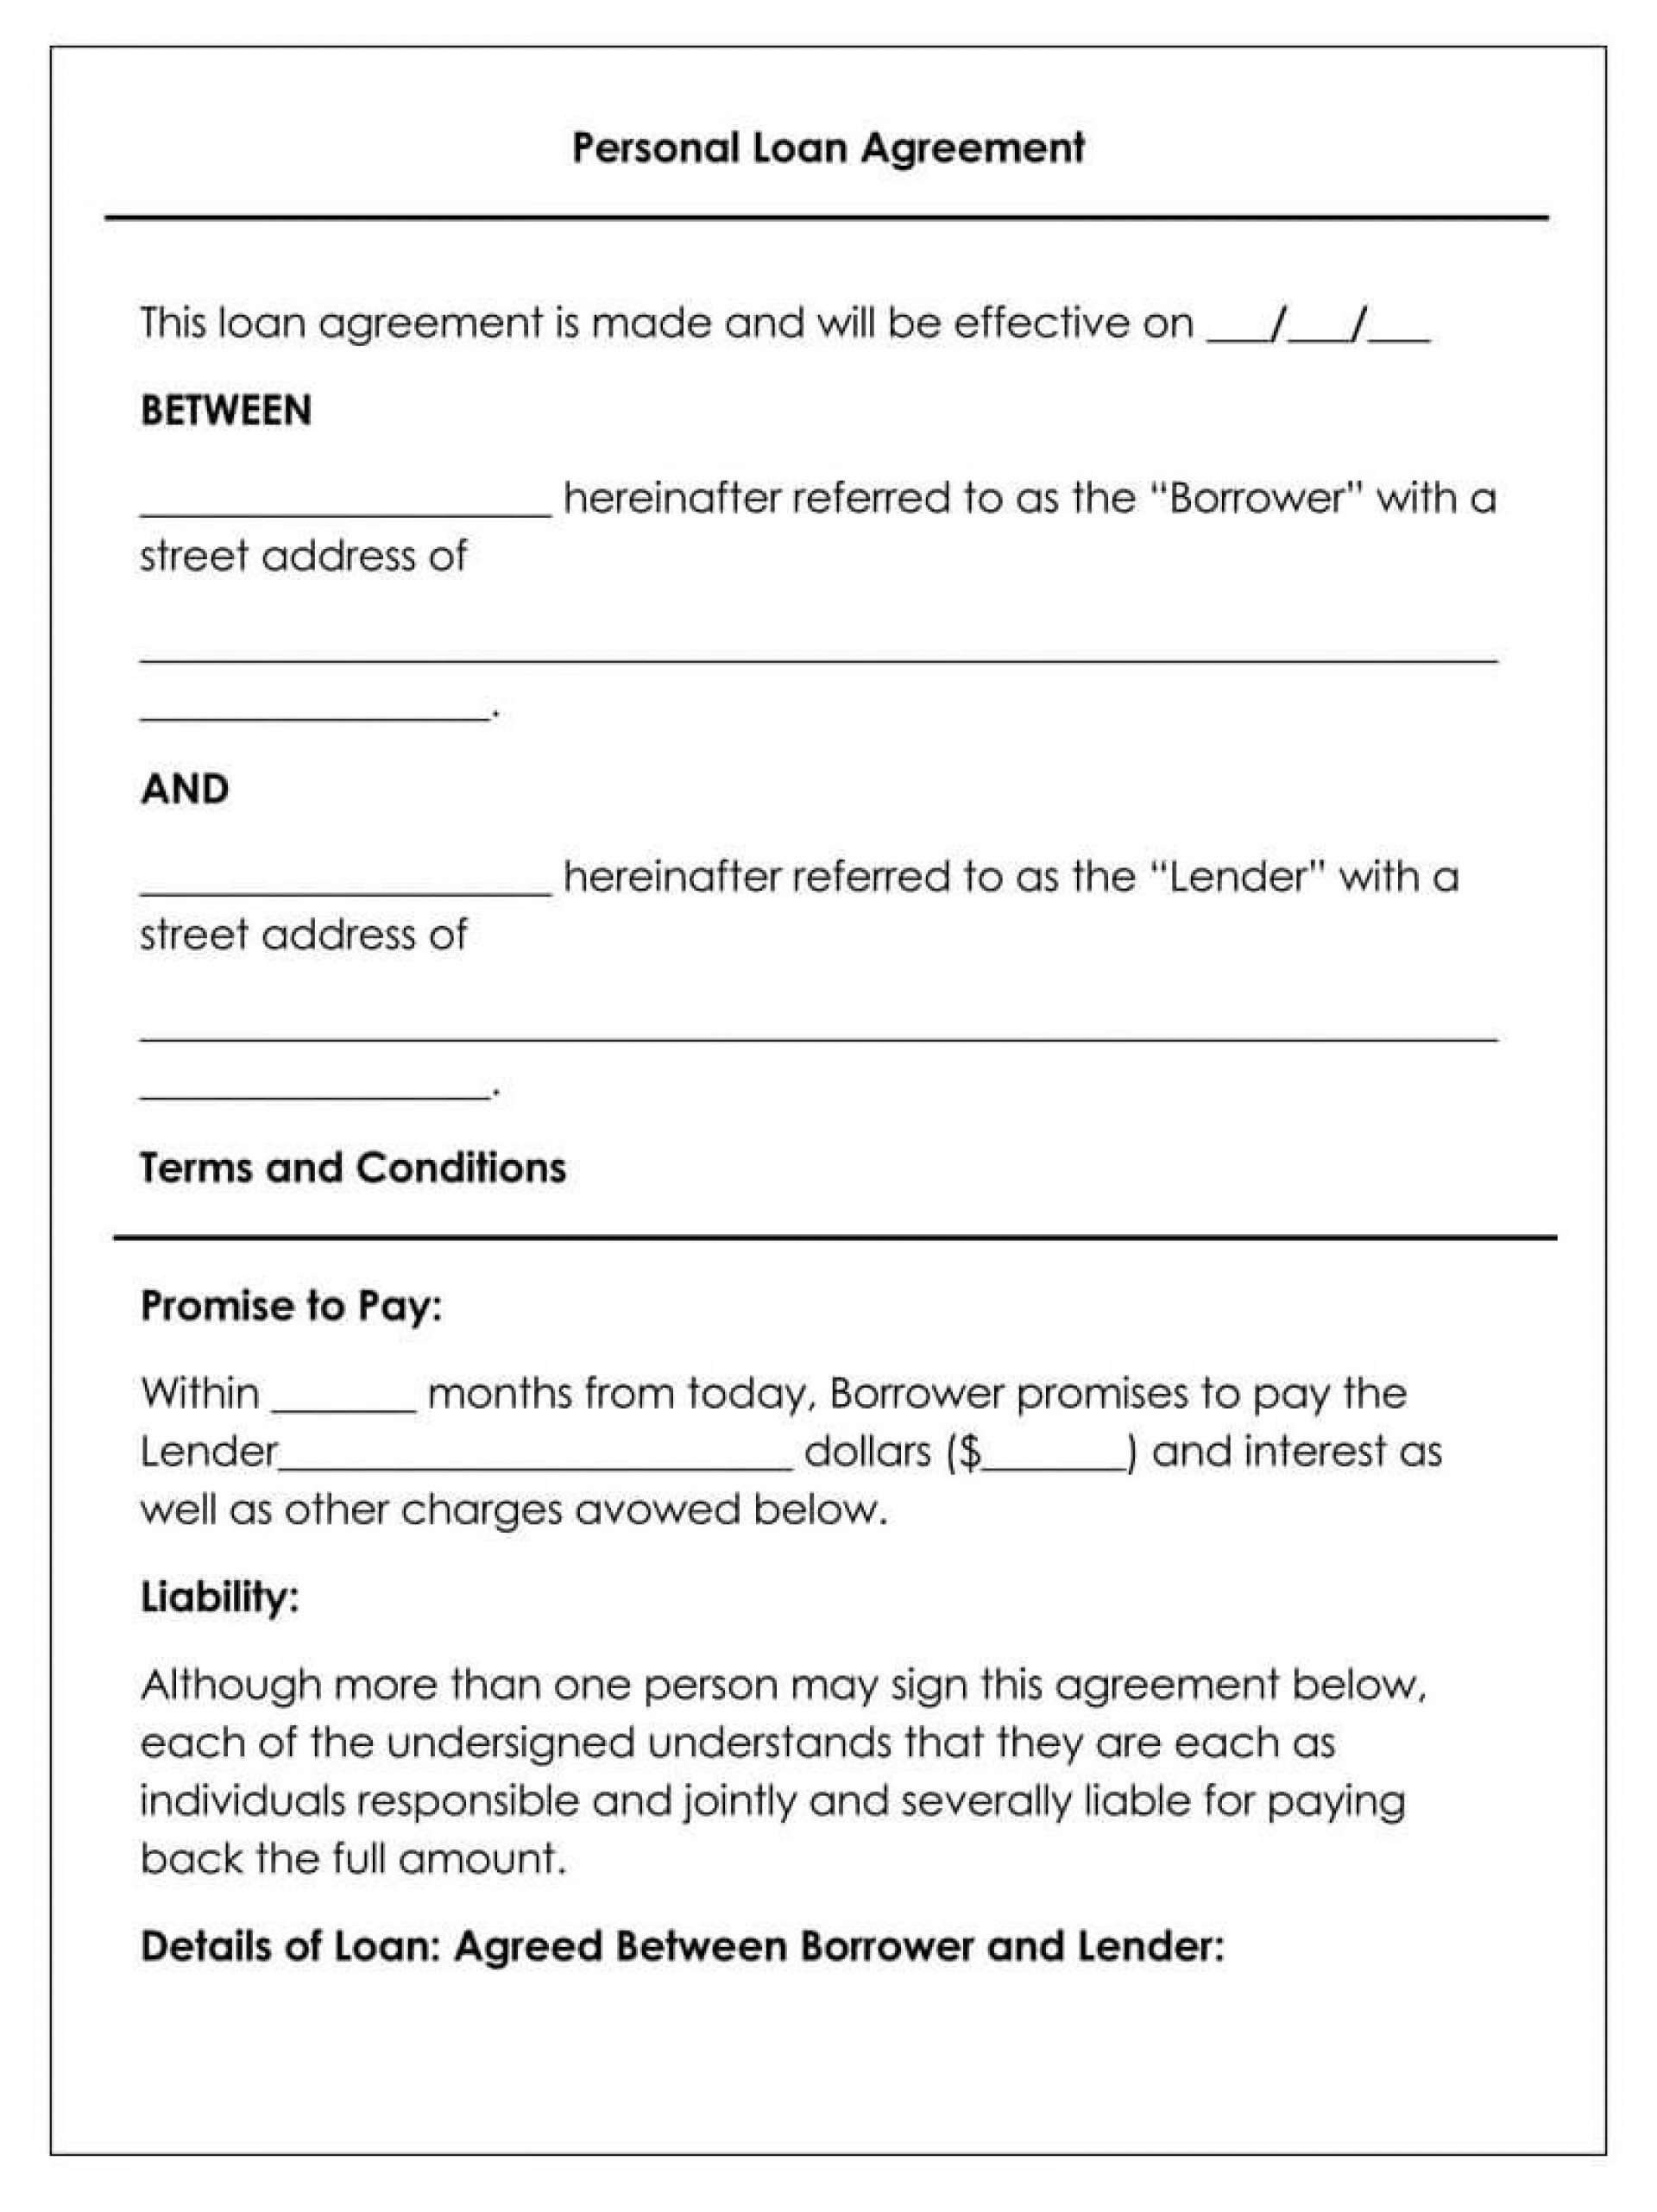 008 Fearsome Loan Agreement Template Free Image  Wording Family Uk Personal Australia1920